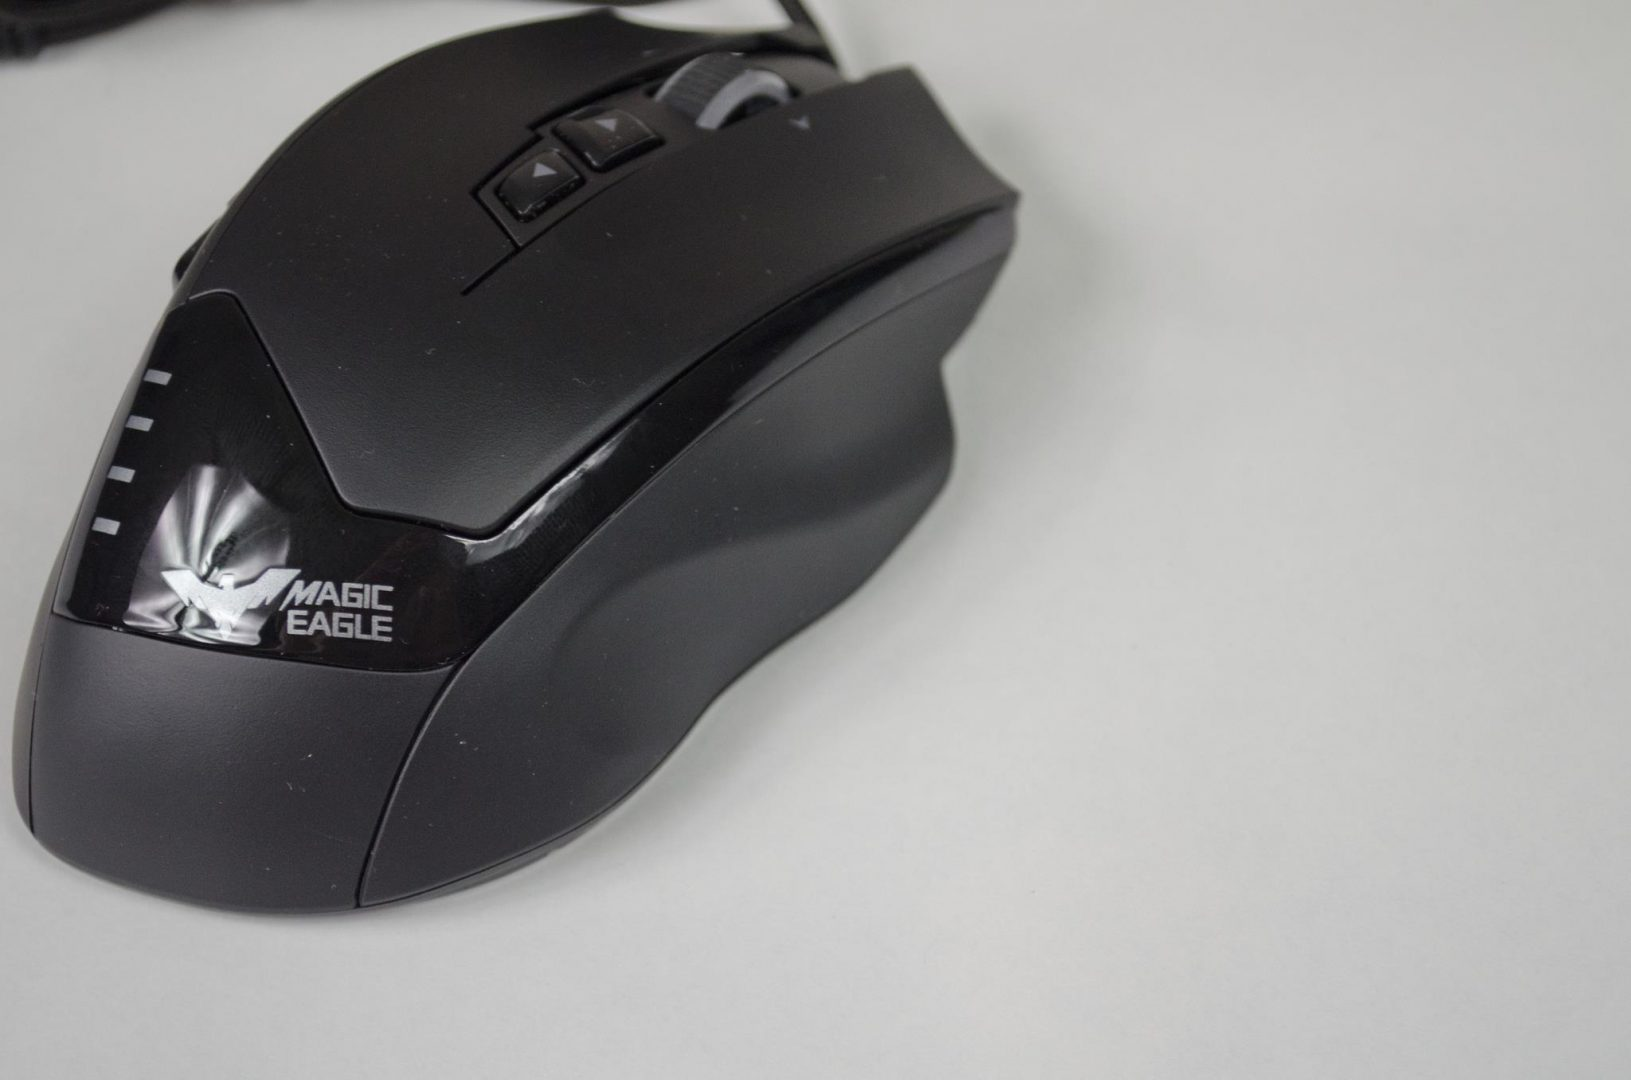 havit-hv-ms735-mouse-review_5